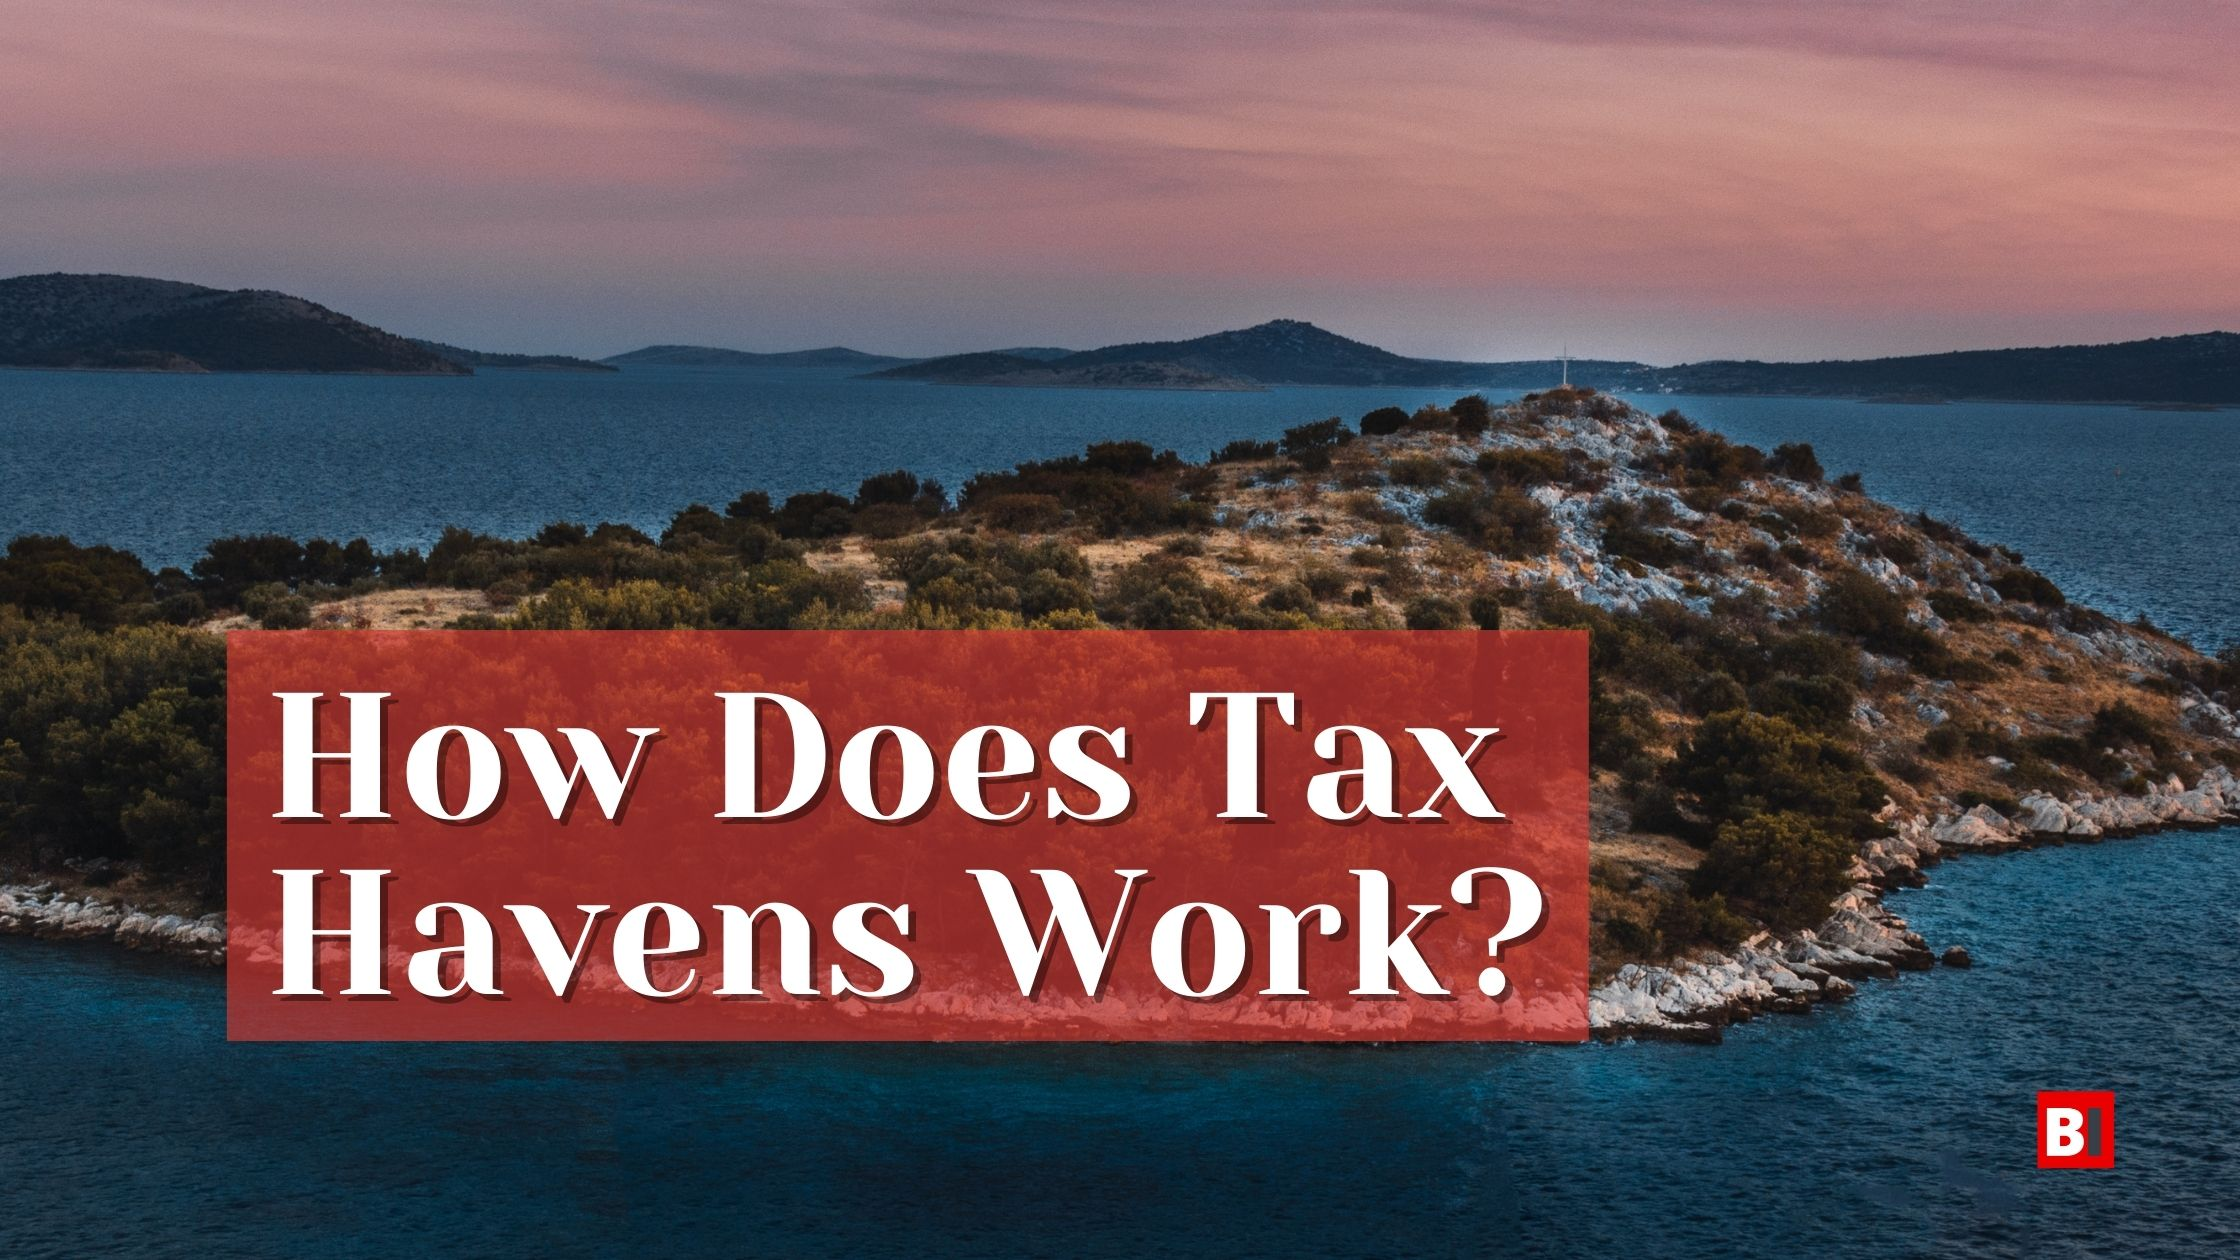 How Does Tax Havens Work?